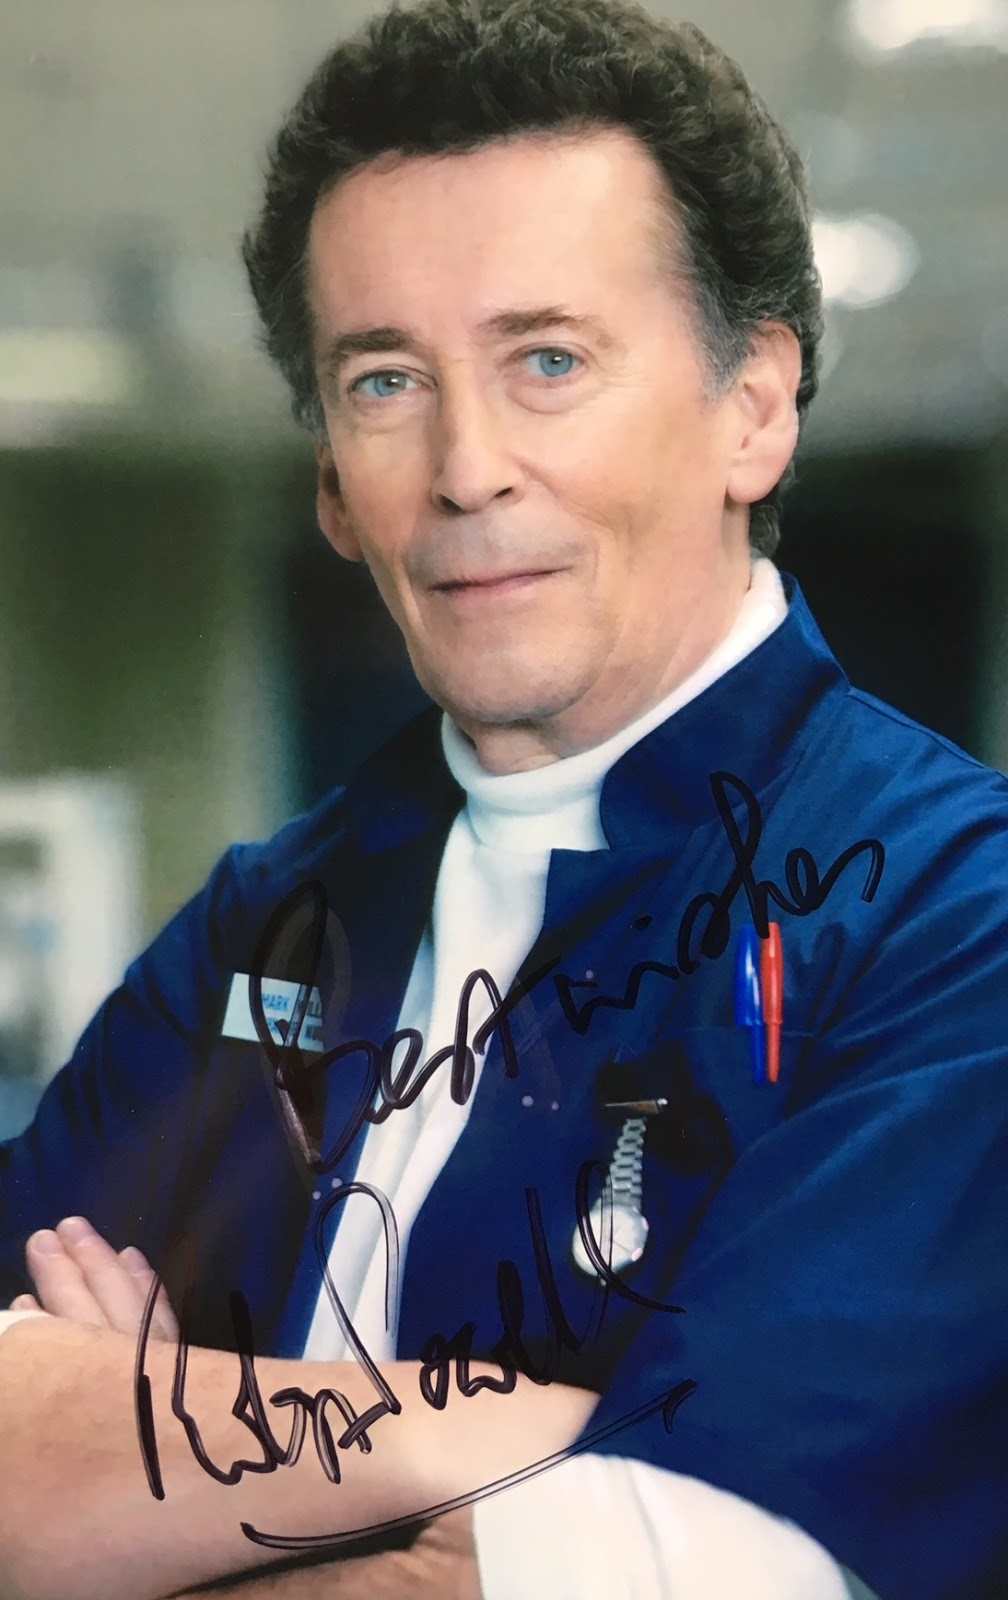 Celebrity Signings: Robert Powell (The Detectives, Jesus of